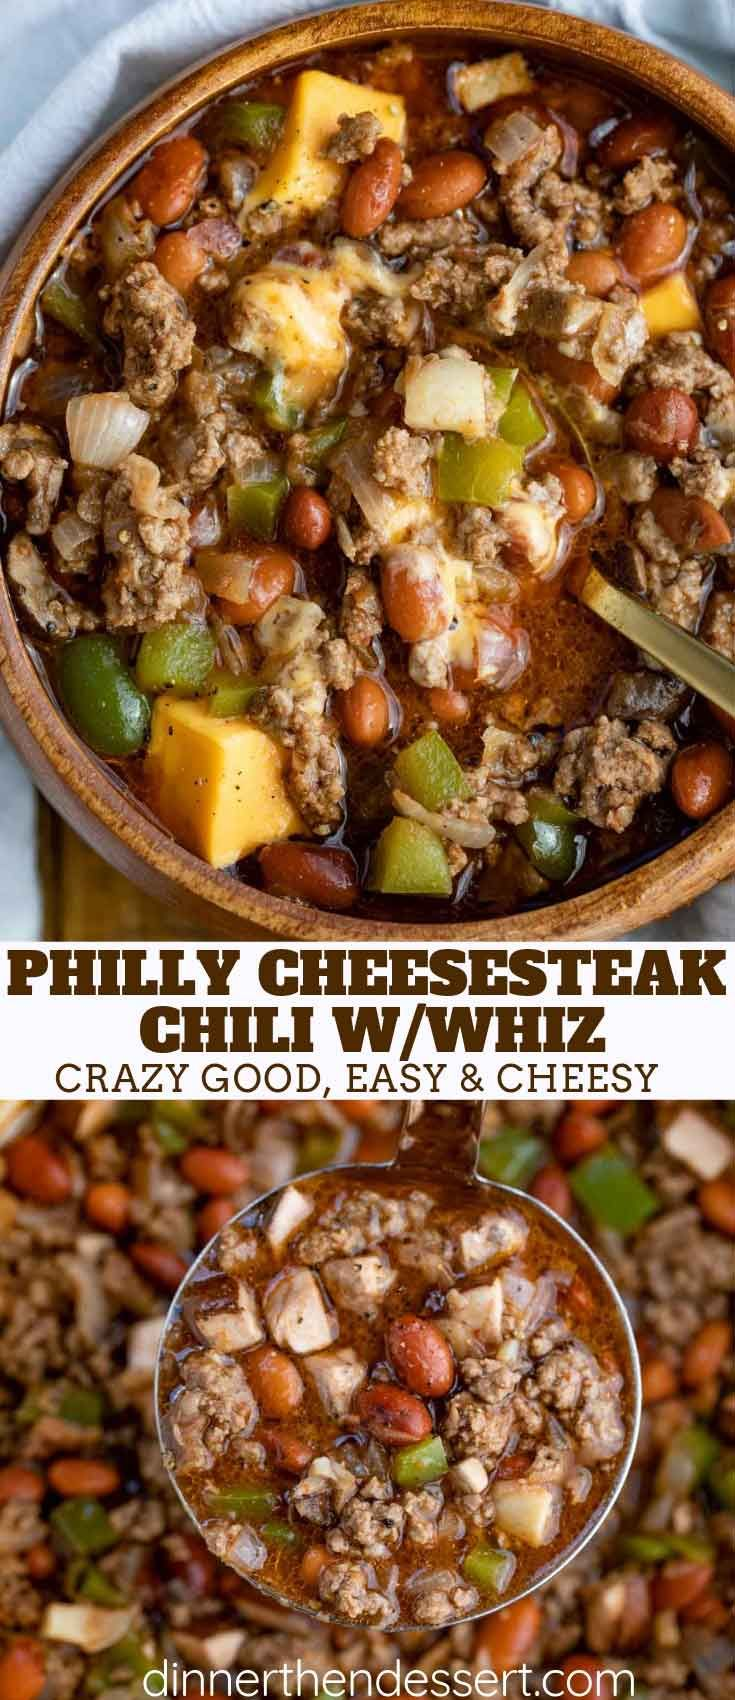 Philly Cheesesteak Chili made with butter seared ground beef, bell peppers. onions and classic chili flavors topped with provolone cheese. The perfect combination of classic Philly Cheesesteak flavors with your favorite Chili recipe! #chili #soup #cheesesteak #philly #beef #groundbeef #dinner #gameday #dinnerthendessert #chilirecipe